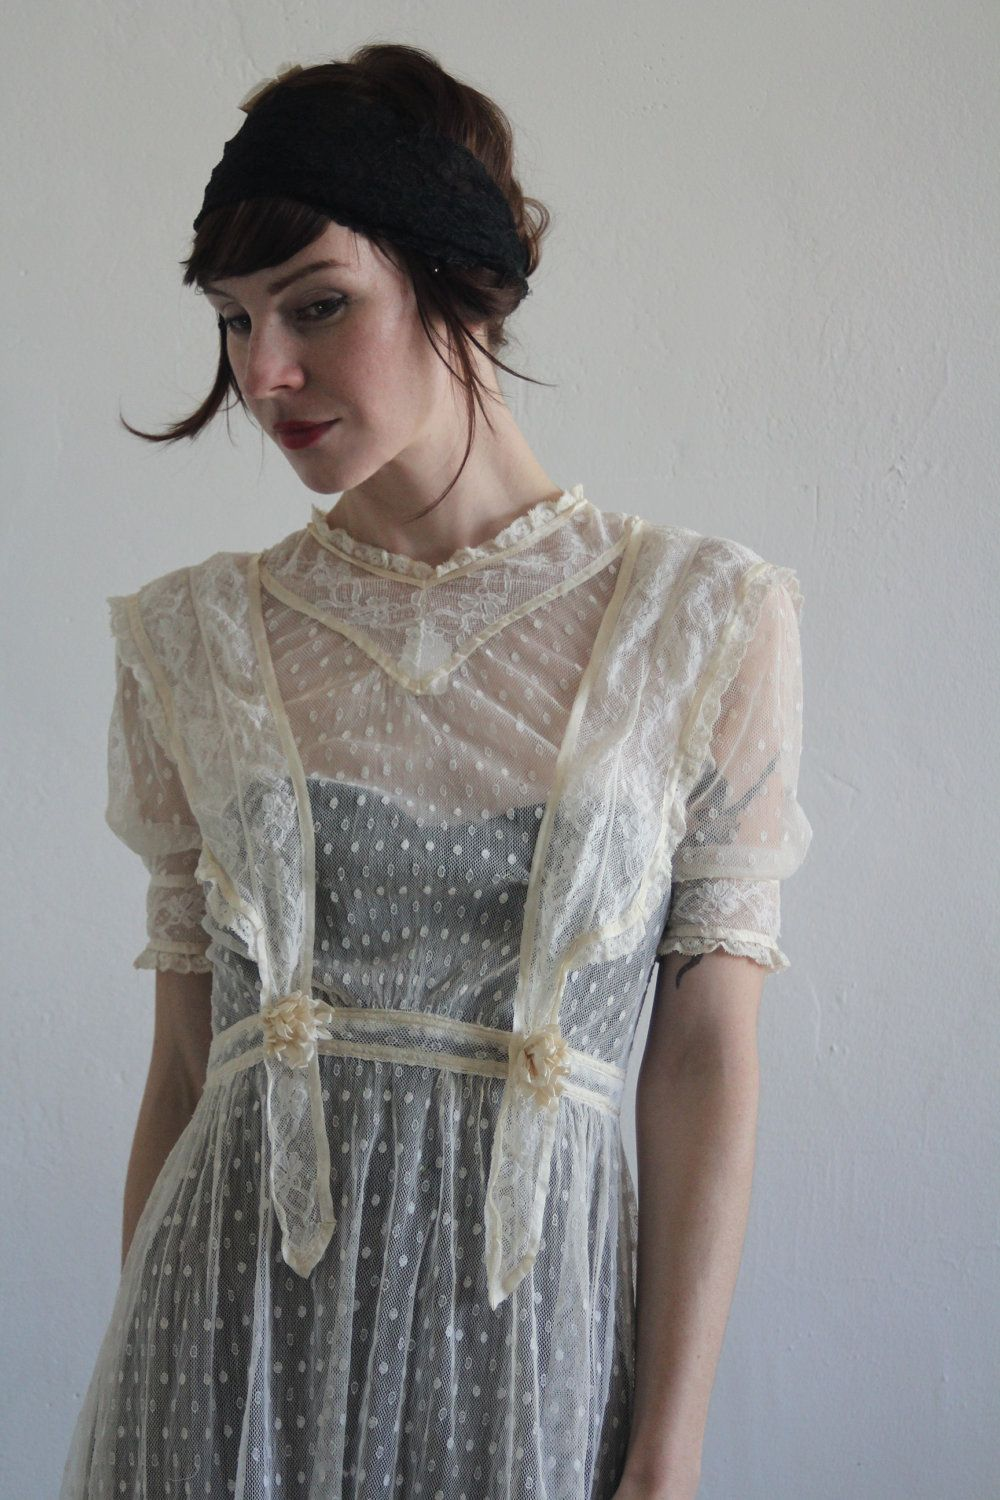 Vera vagueetsy is quite a wonder here sporting a dreamy swiss